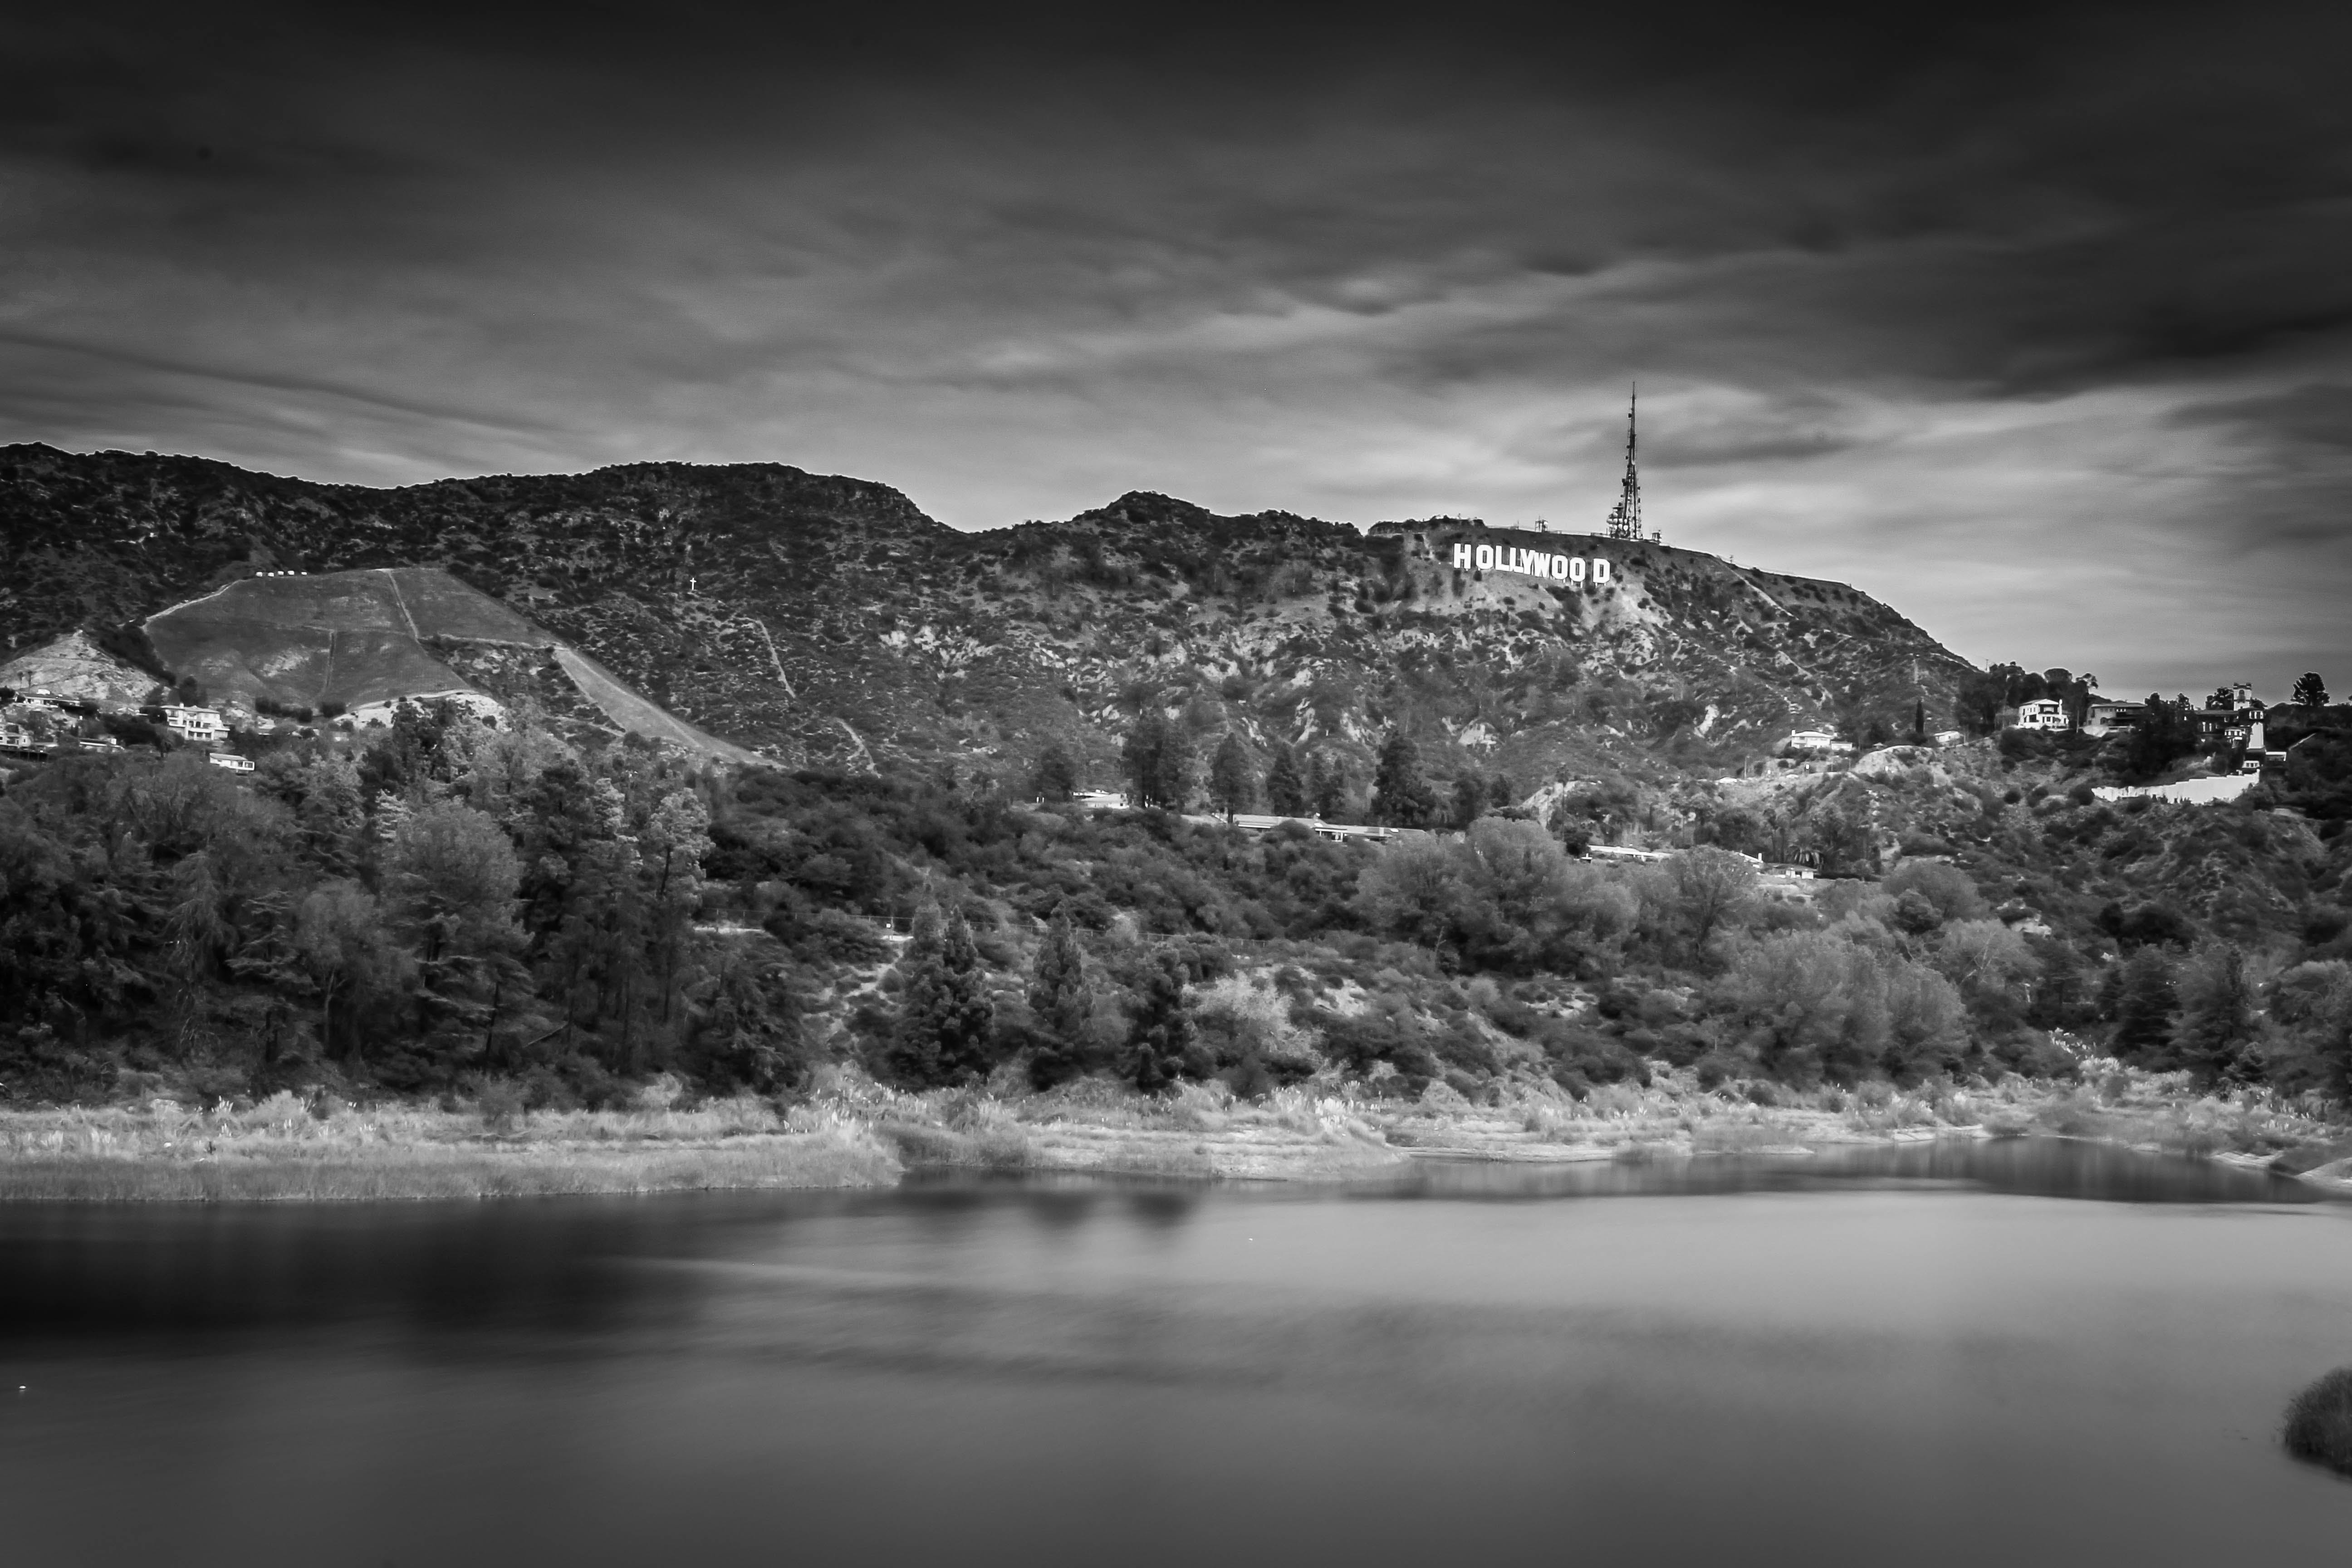 Free stock photo of black and white, hollywood, hollywood reservoir, hollywood sign